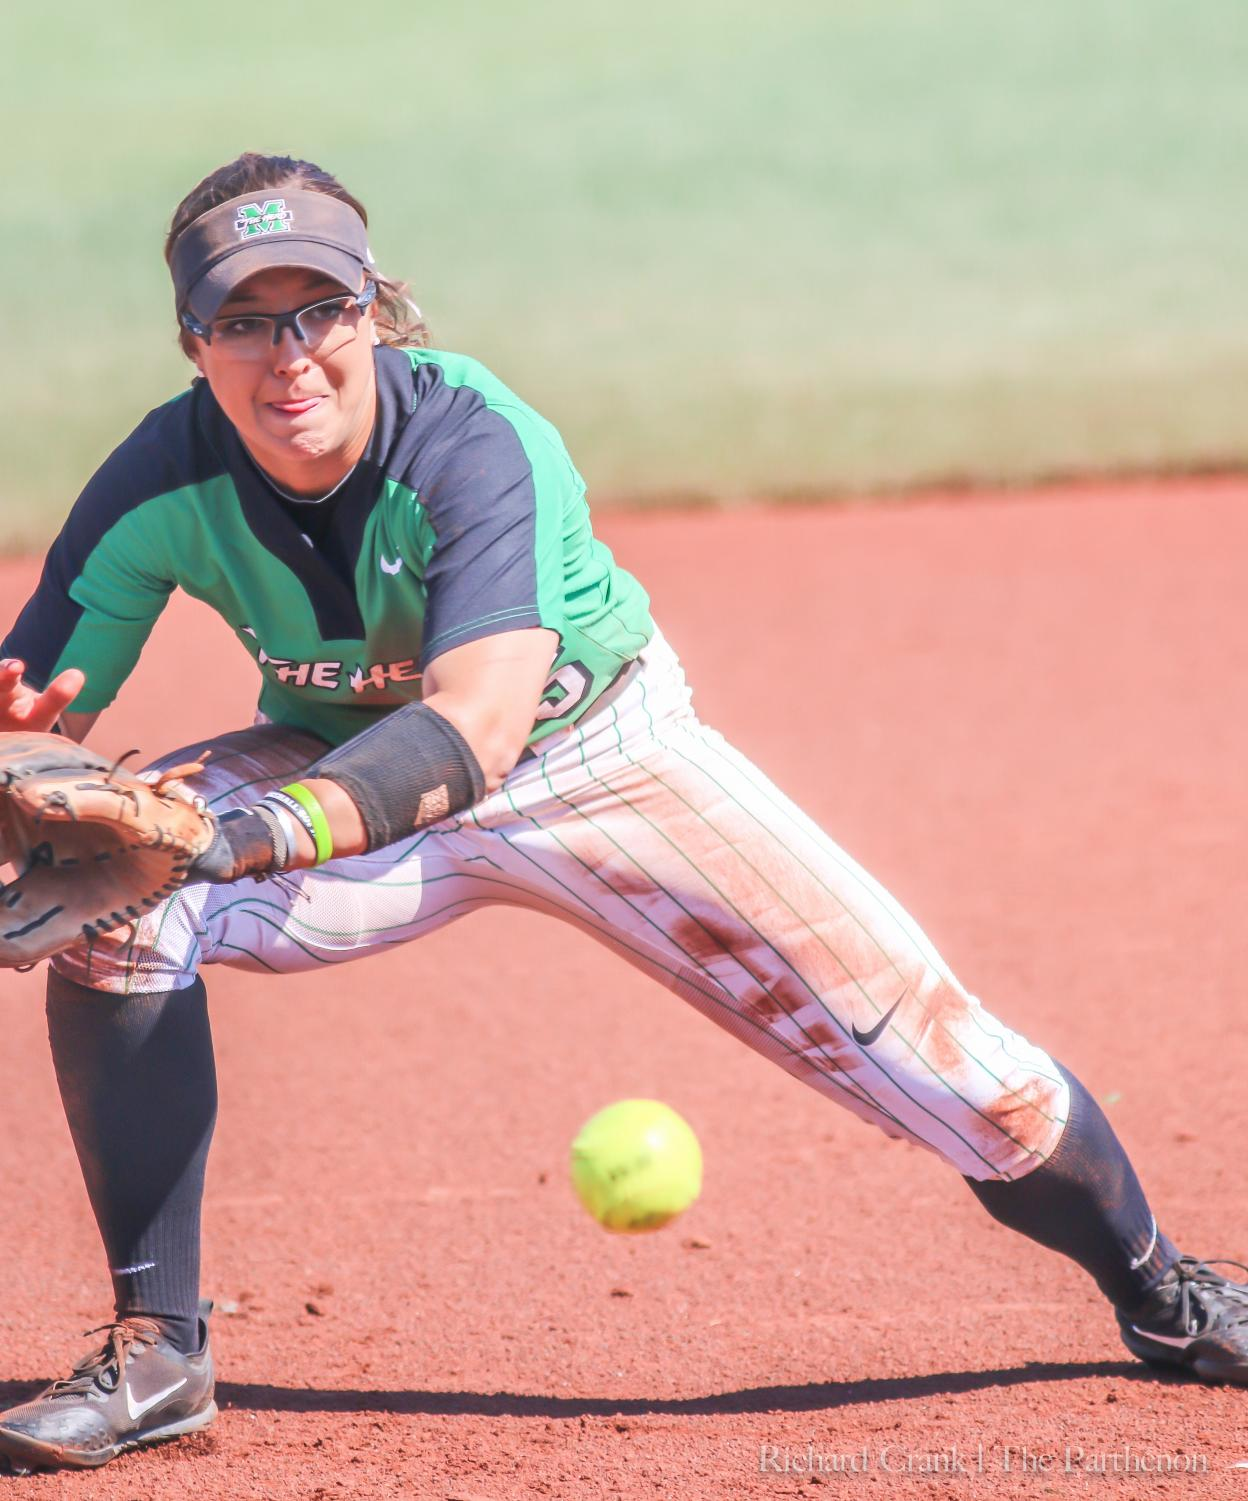 Infielder Blakely Burch (55) fields a ground ball during Marshall's 2018 game against Morehead State at Dot Hicks Field.